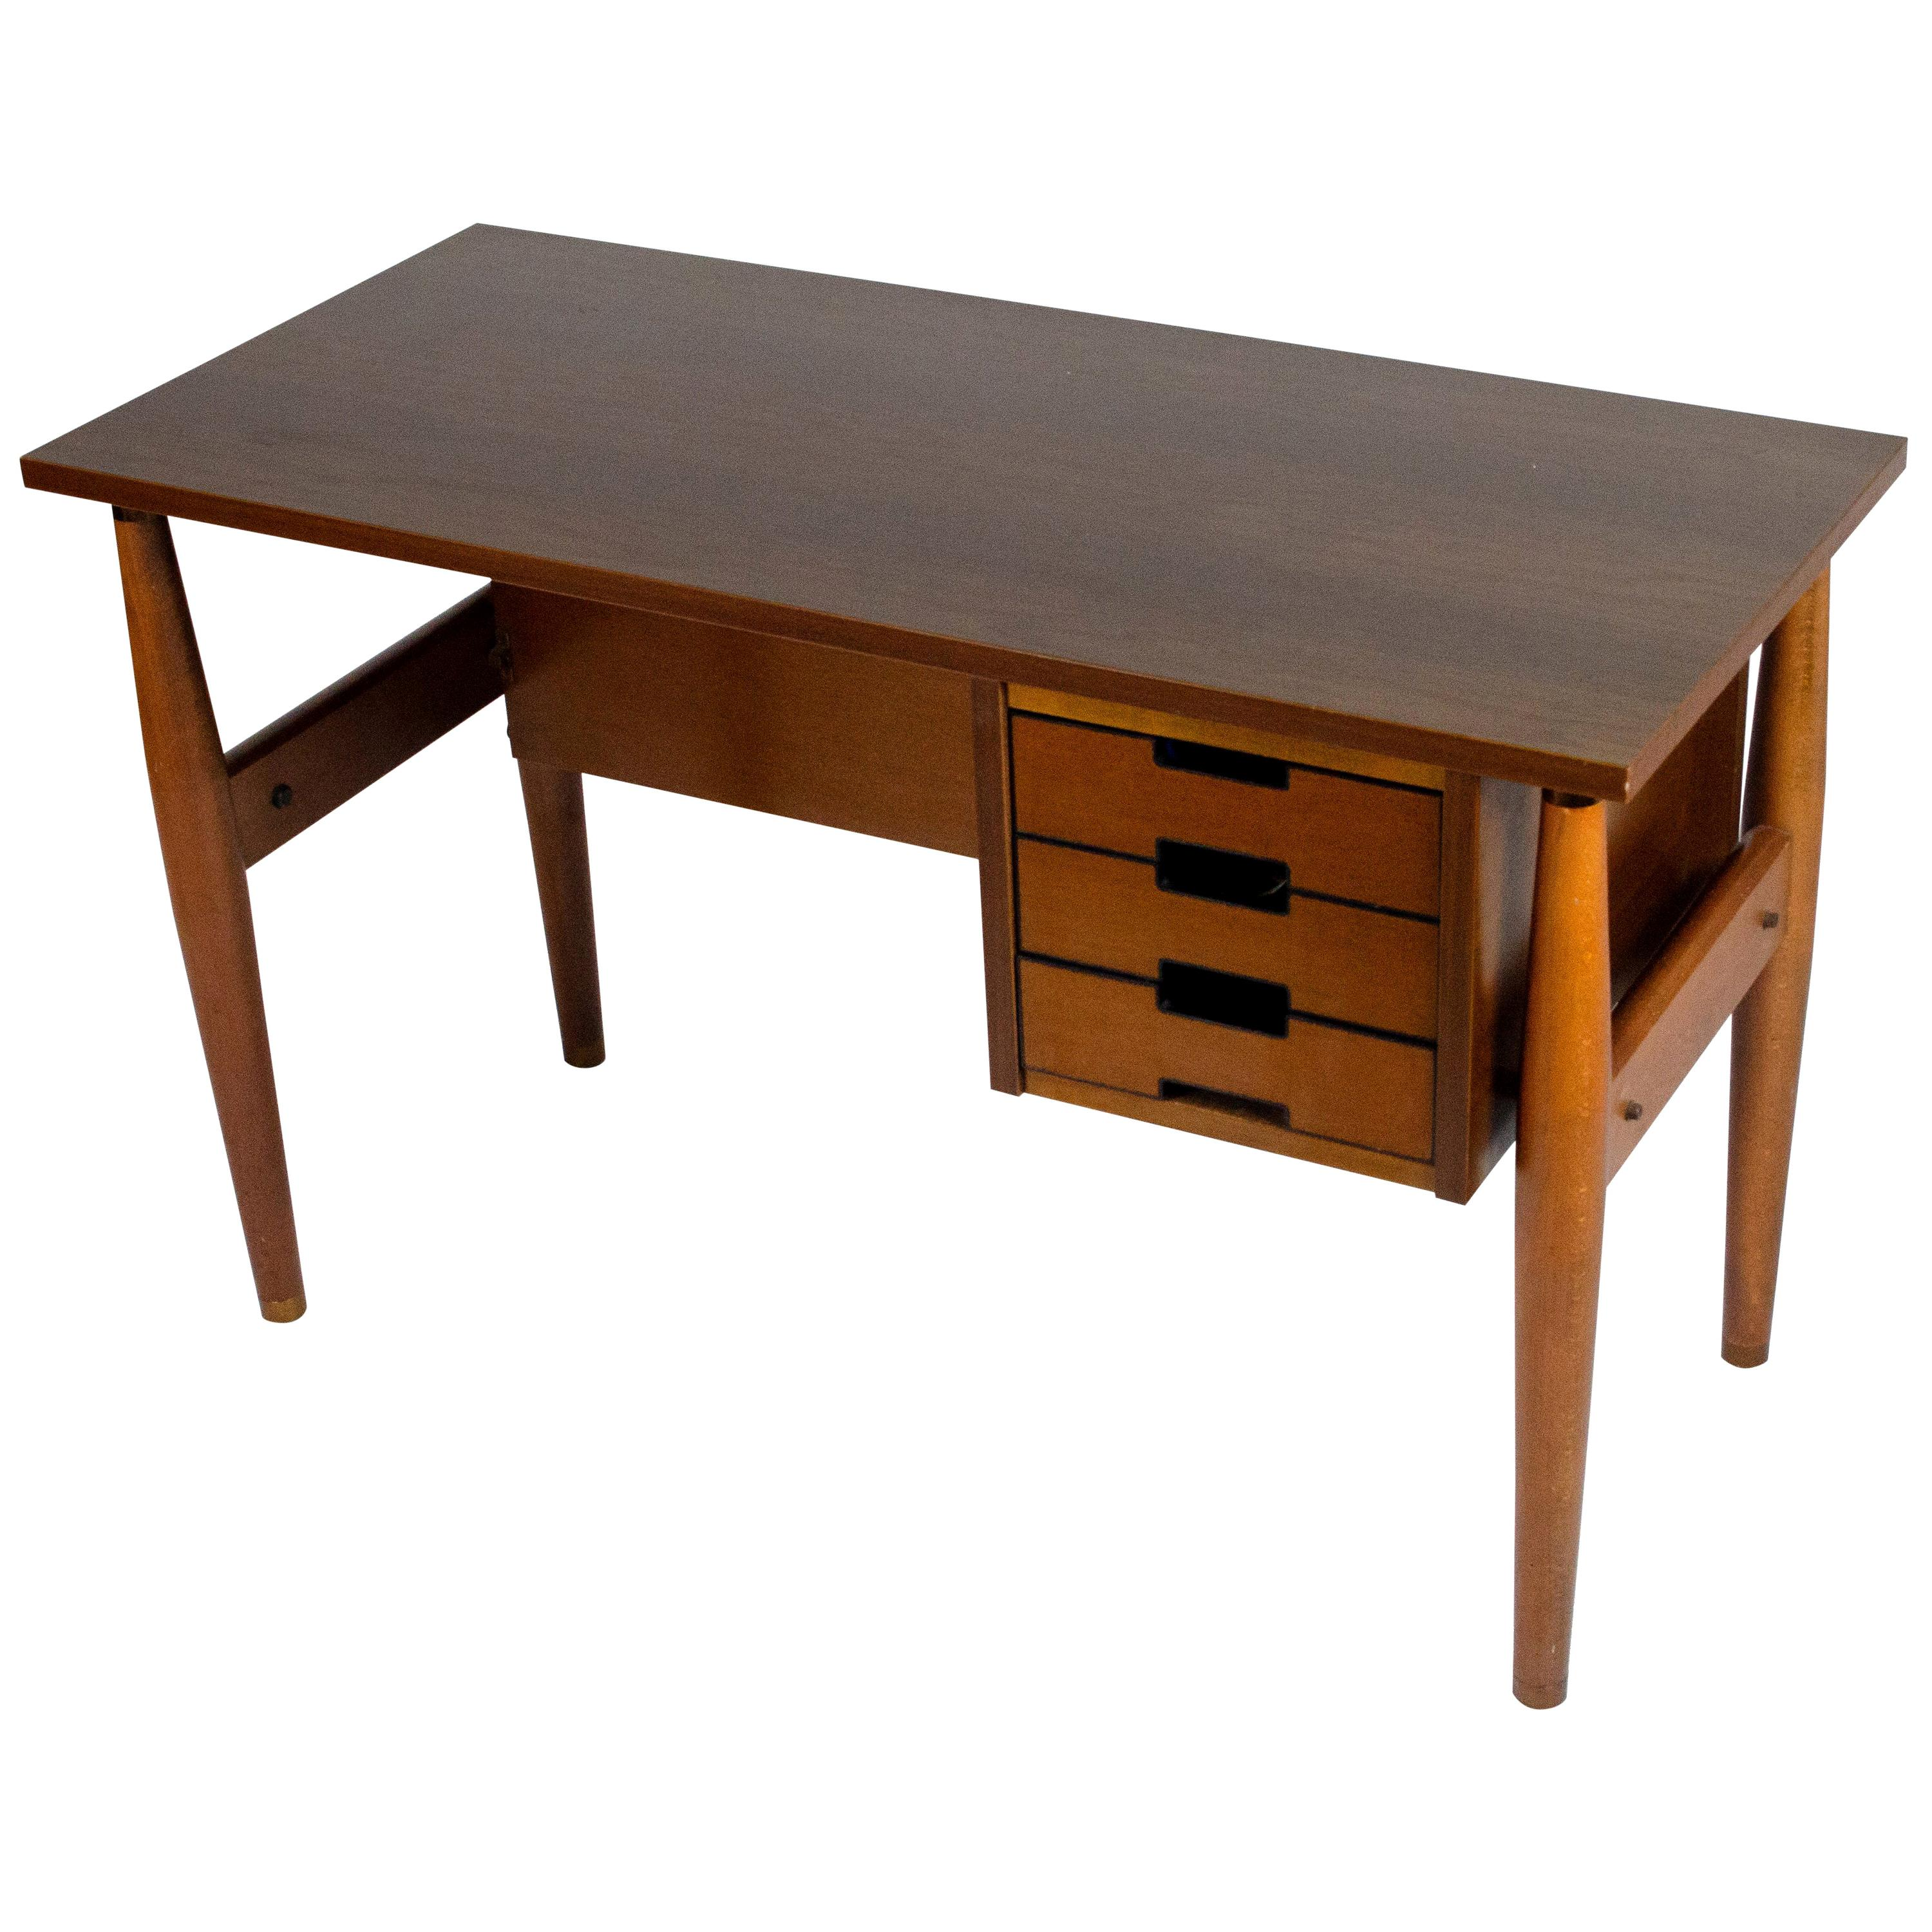 Italian Wood Small Desk With Drawers By Schirolli Mantova 1960s At 1stdibs